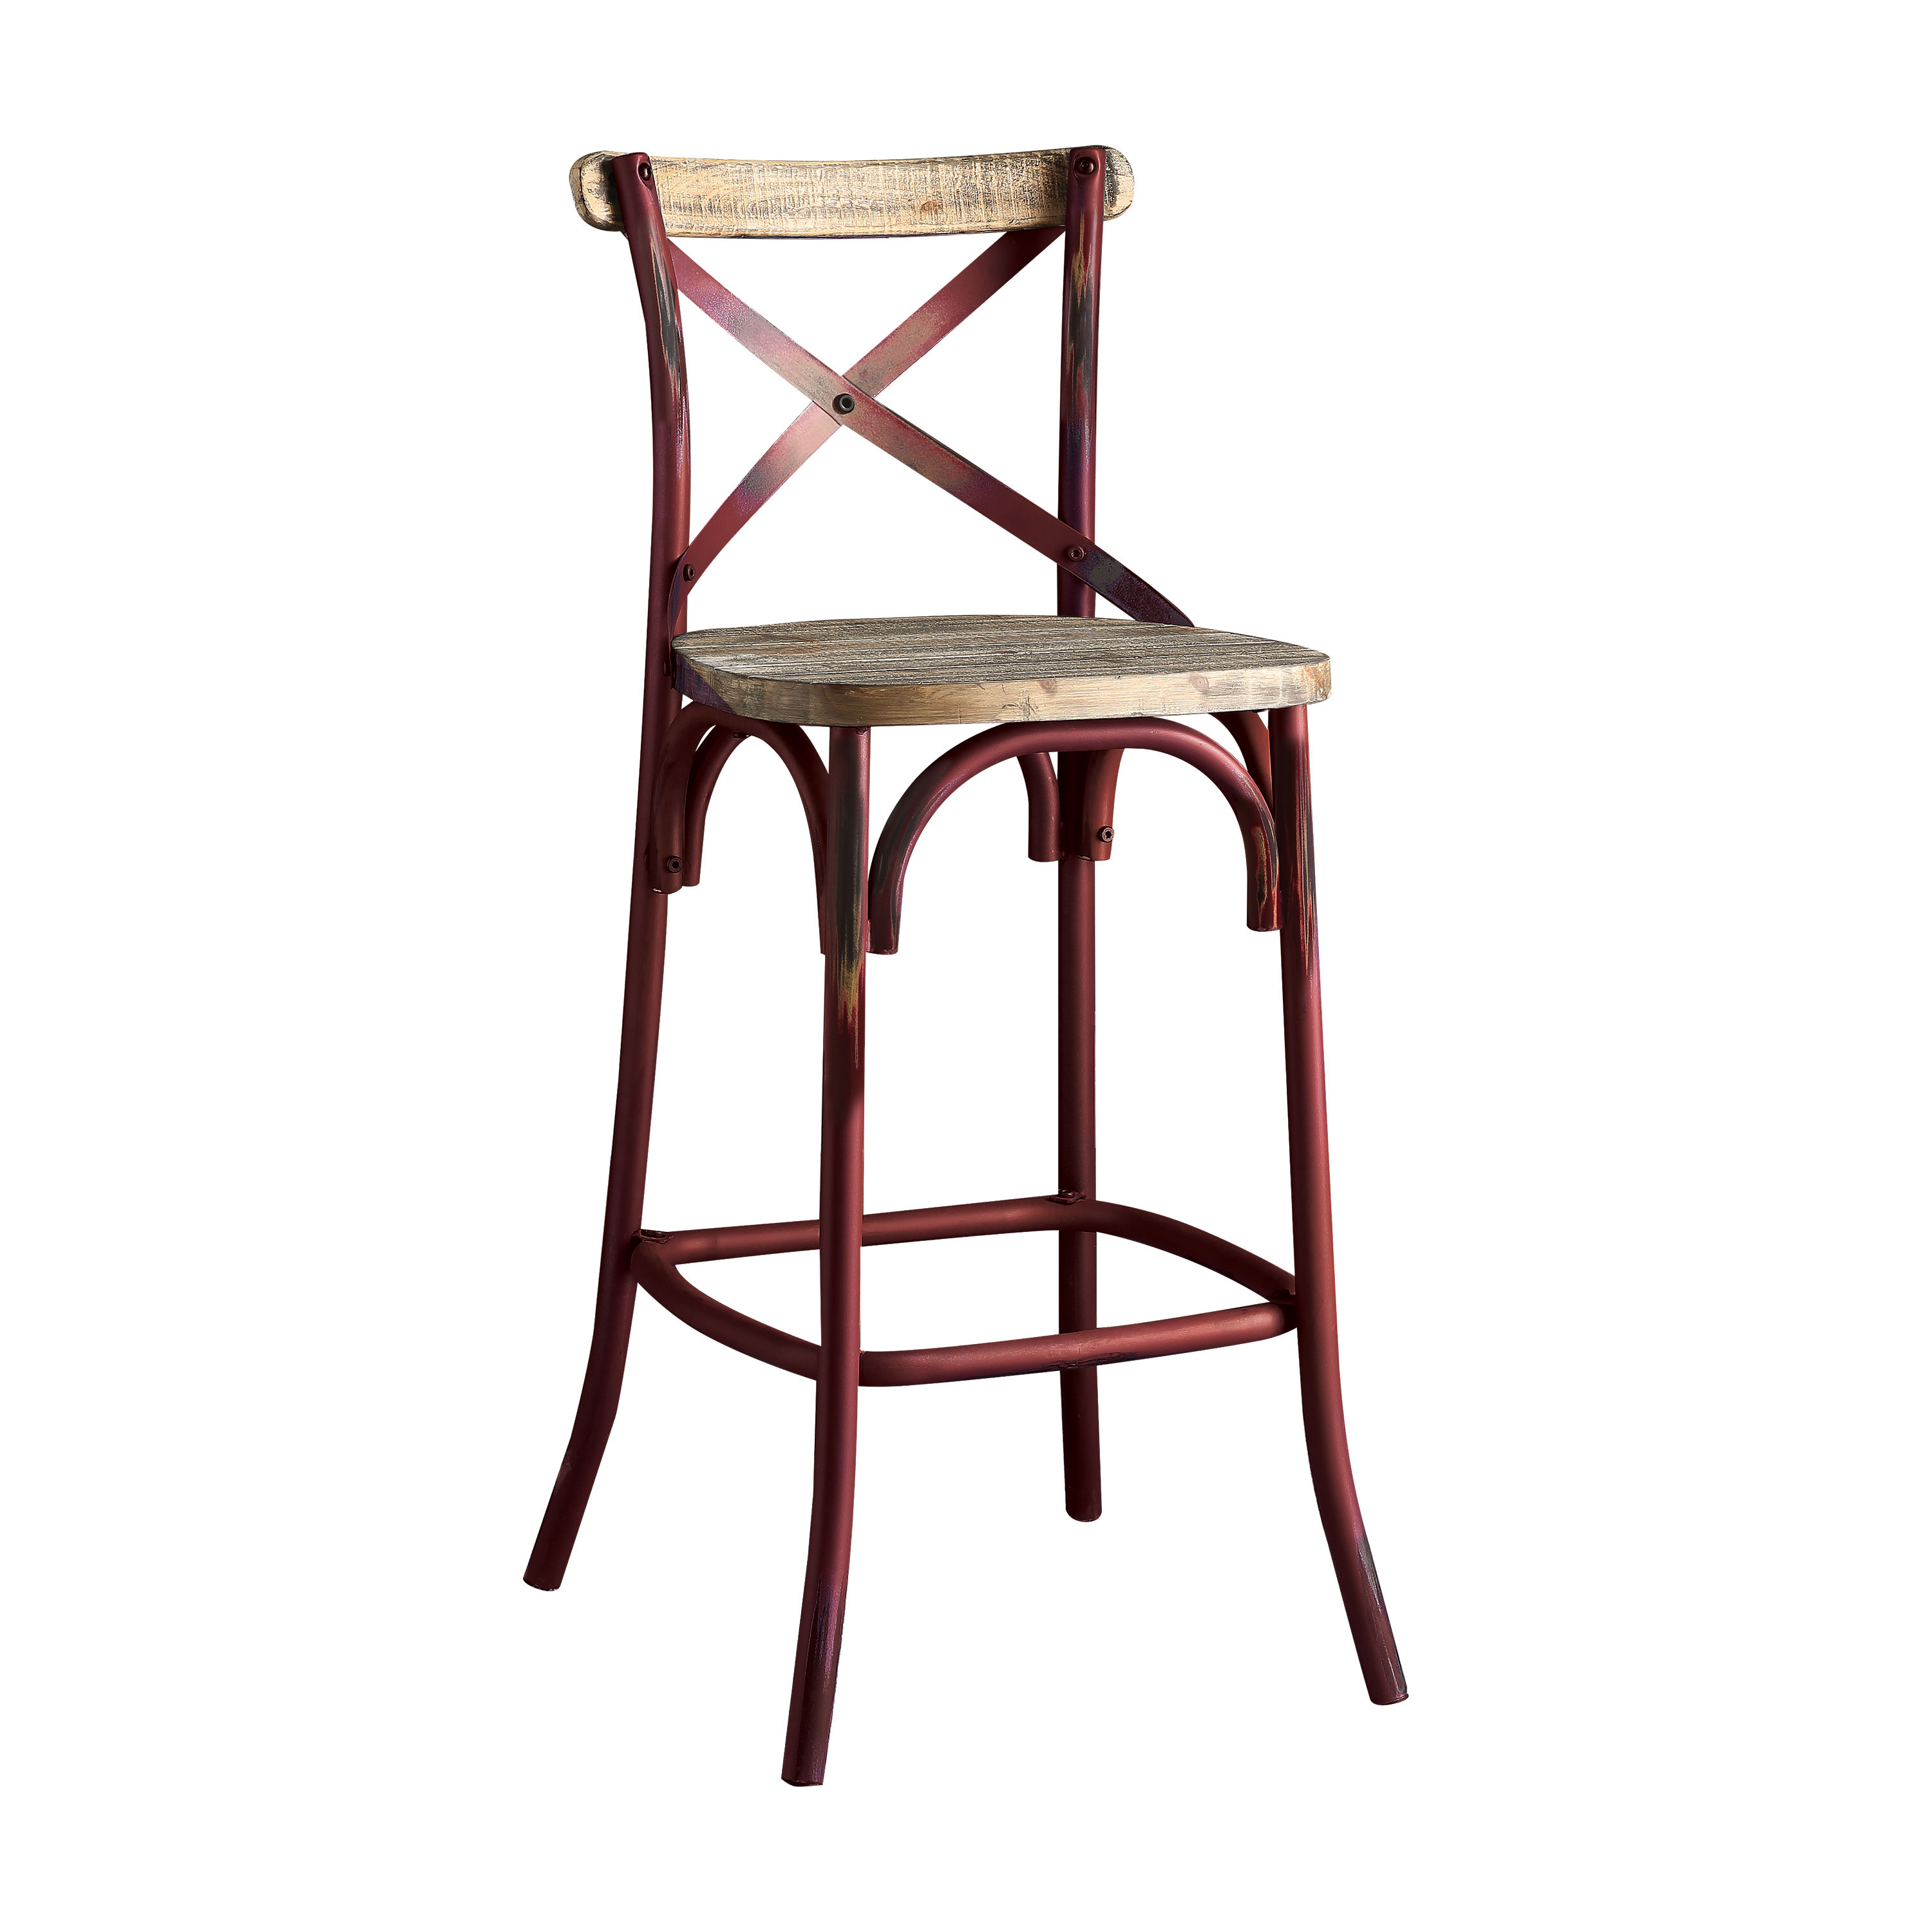 Swell Acme Furniture Zaire Antique Red Bar Chair Evergreenethics Interior Chair Design Evergreenethicsorg